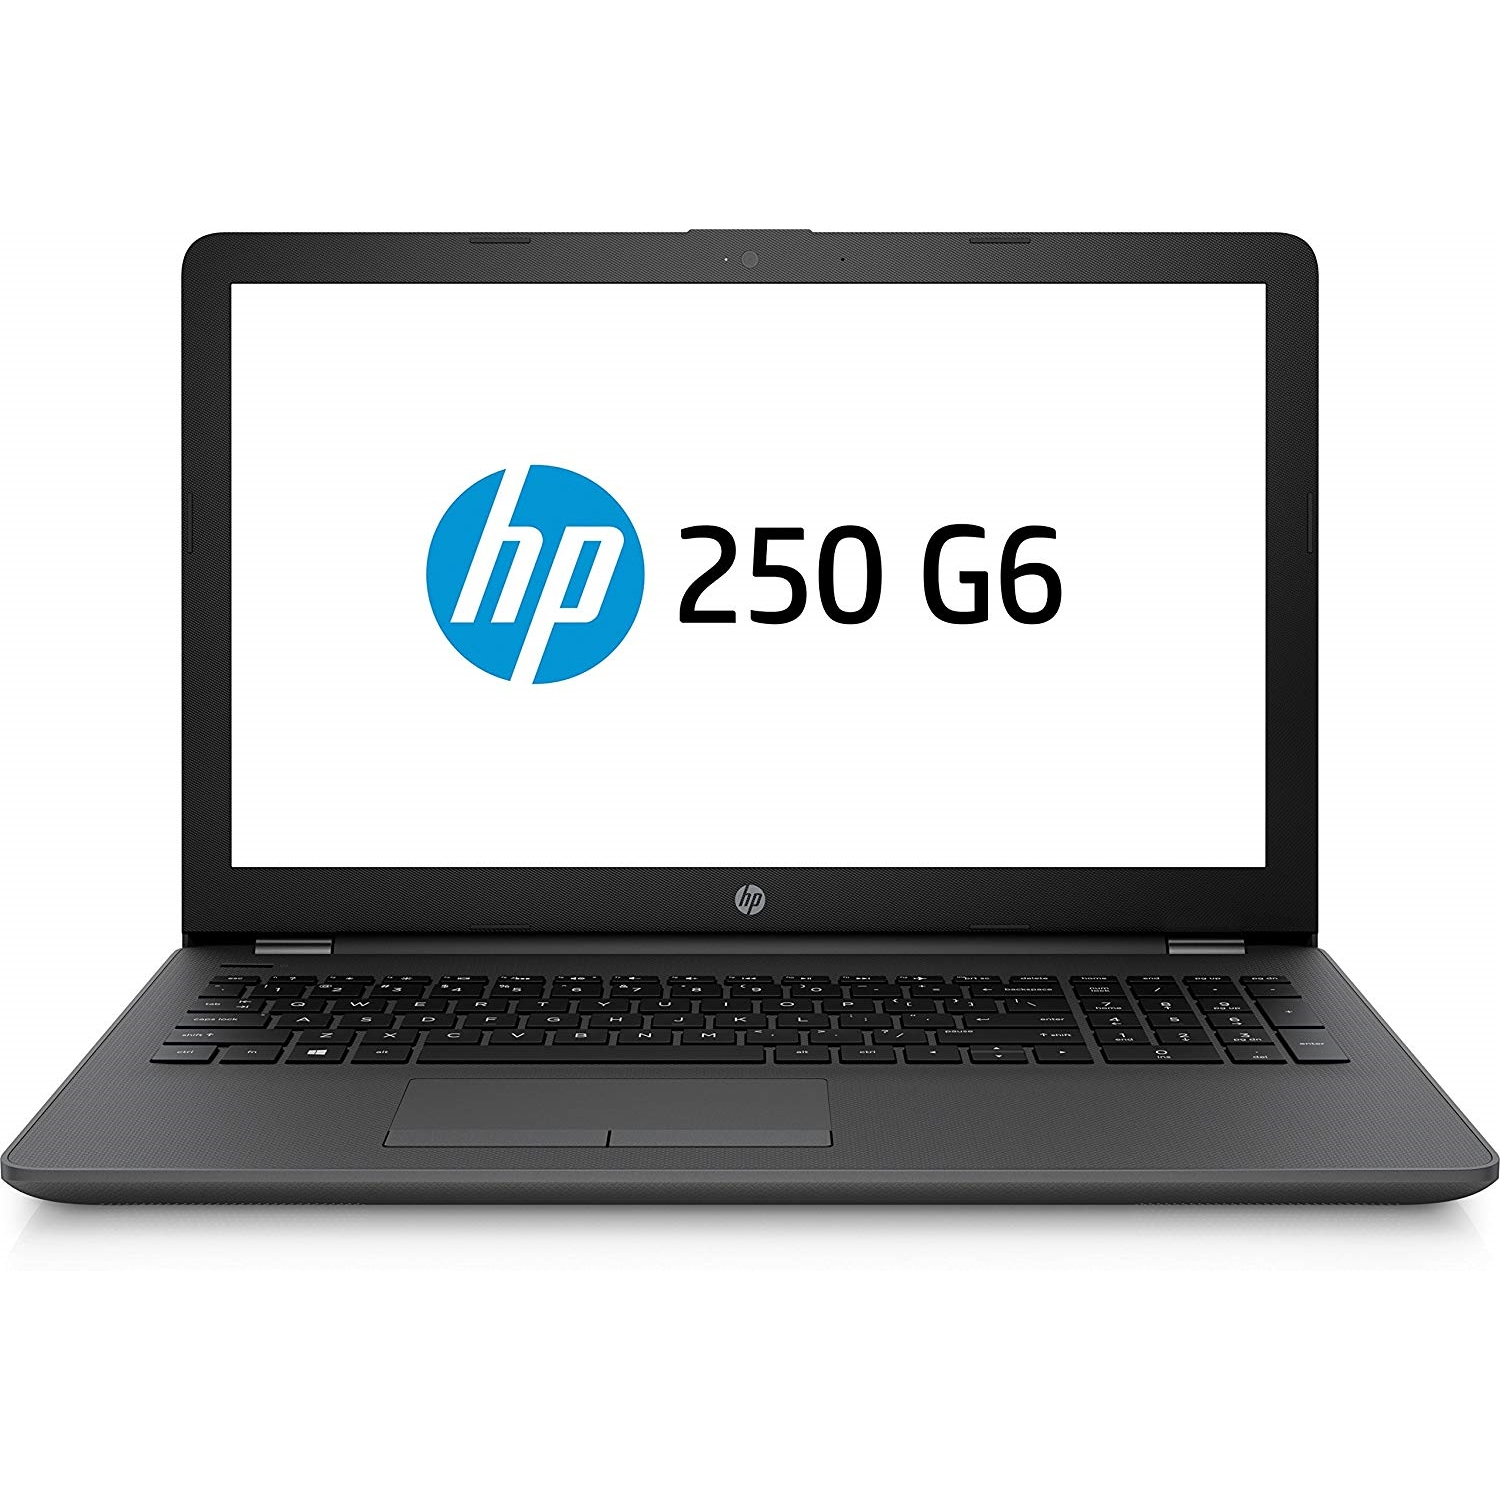 "HP 250 G6 1XN32EA I3-6006U 4GB 500GB 2GB R5-M430 15.6"" FREEDOS NOTEBOOK"